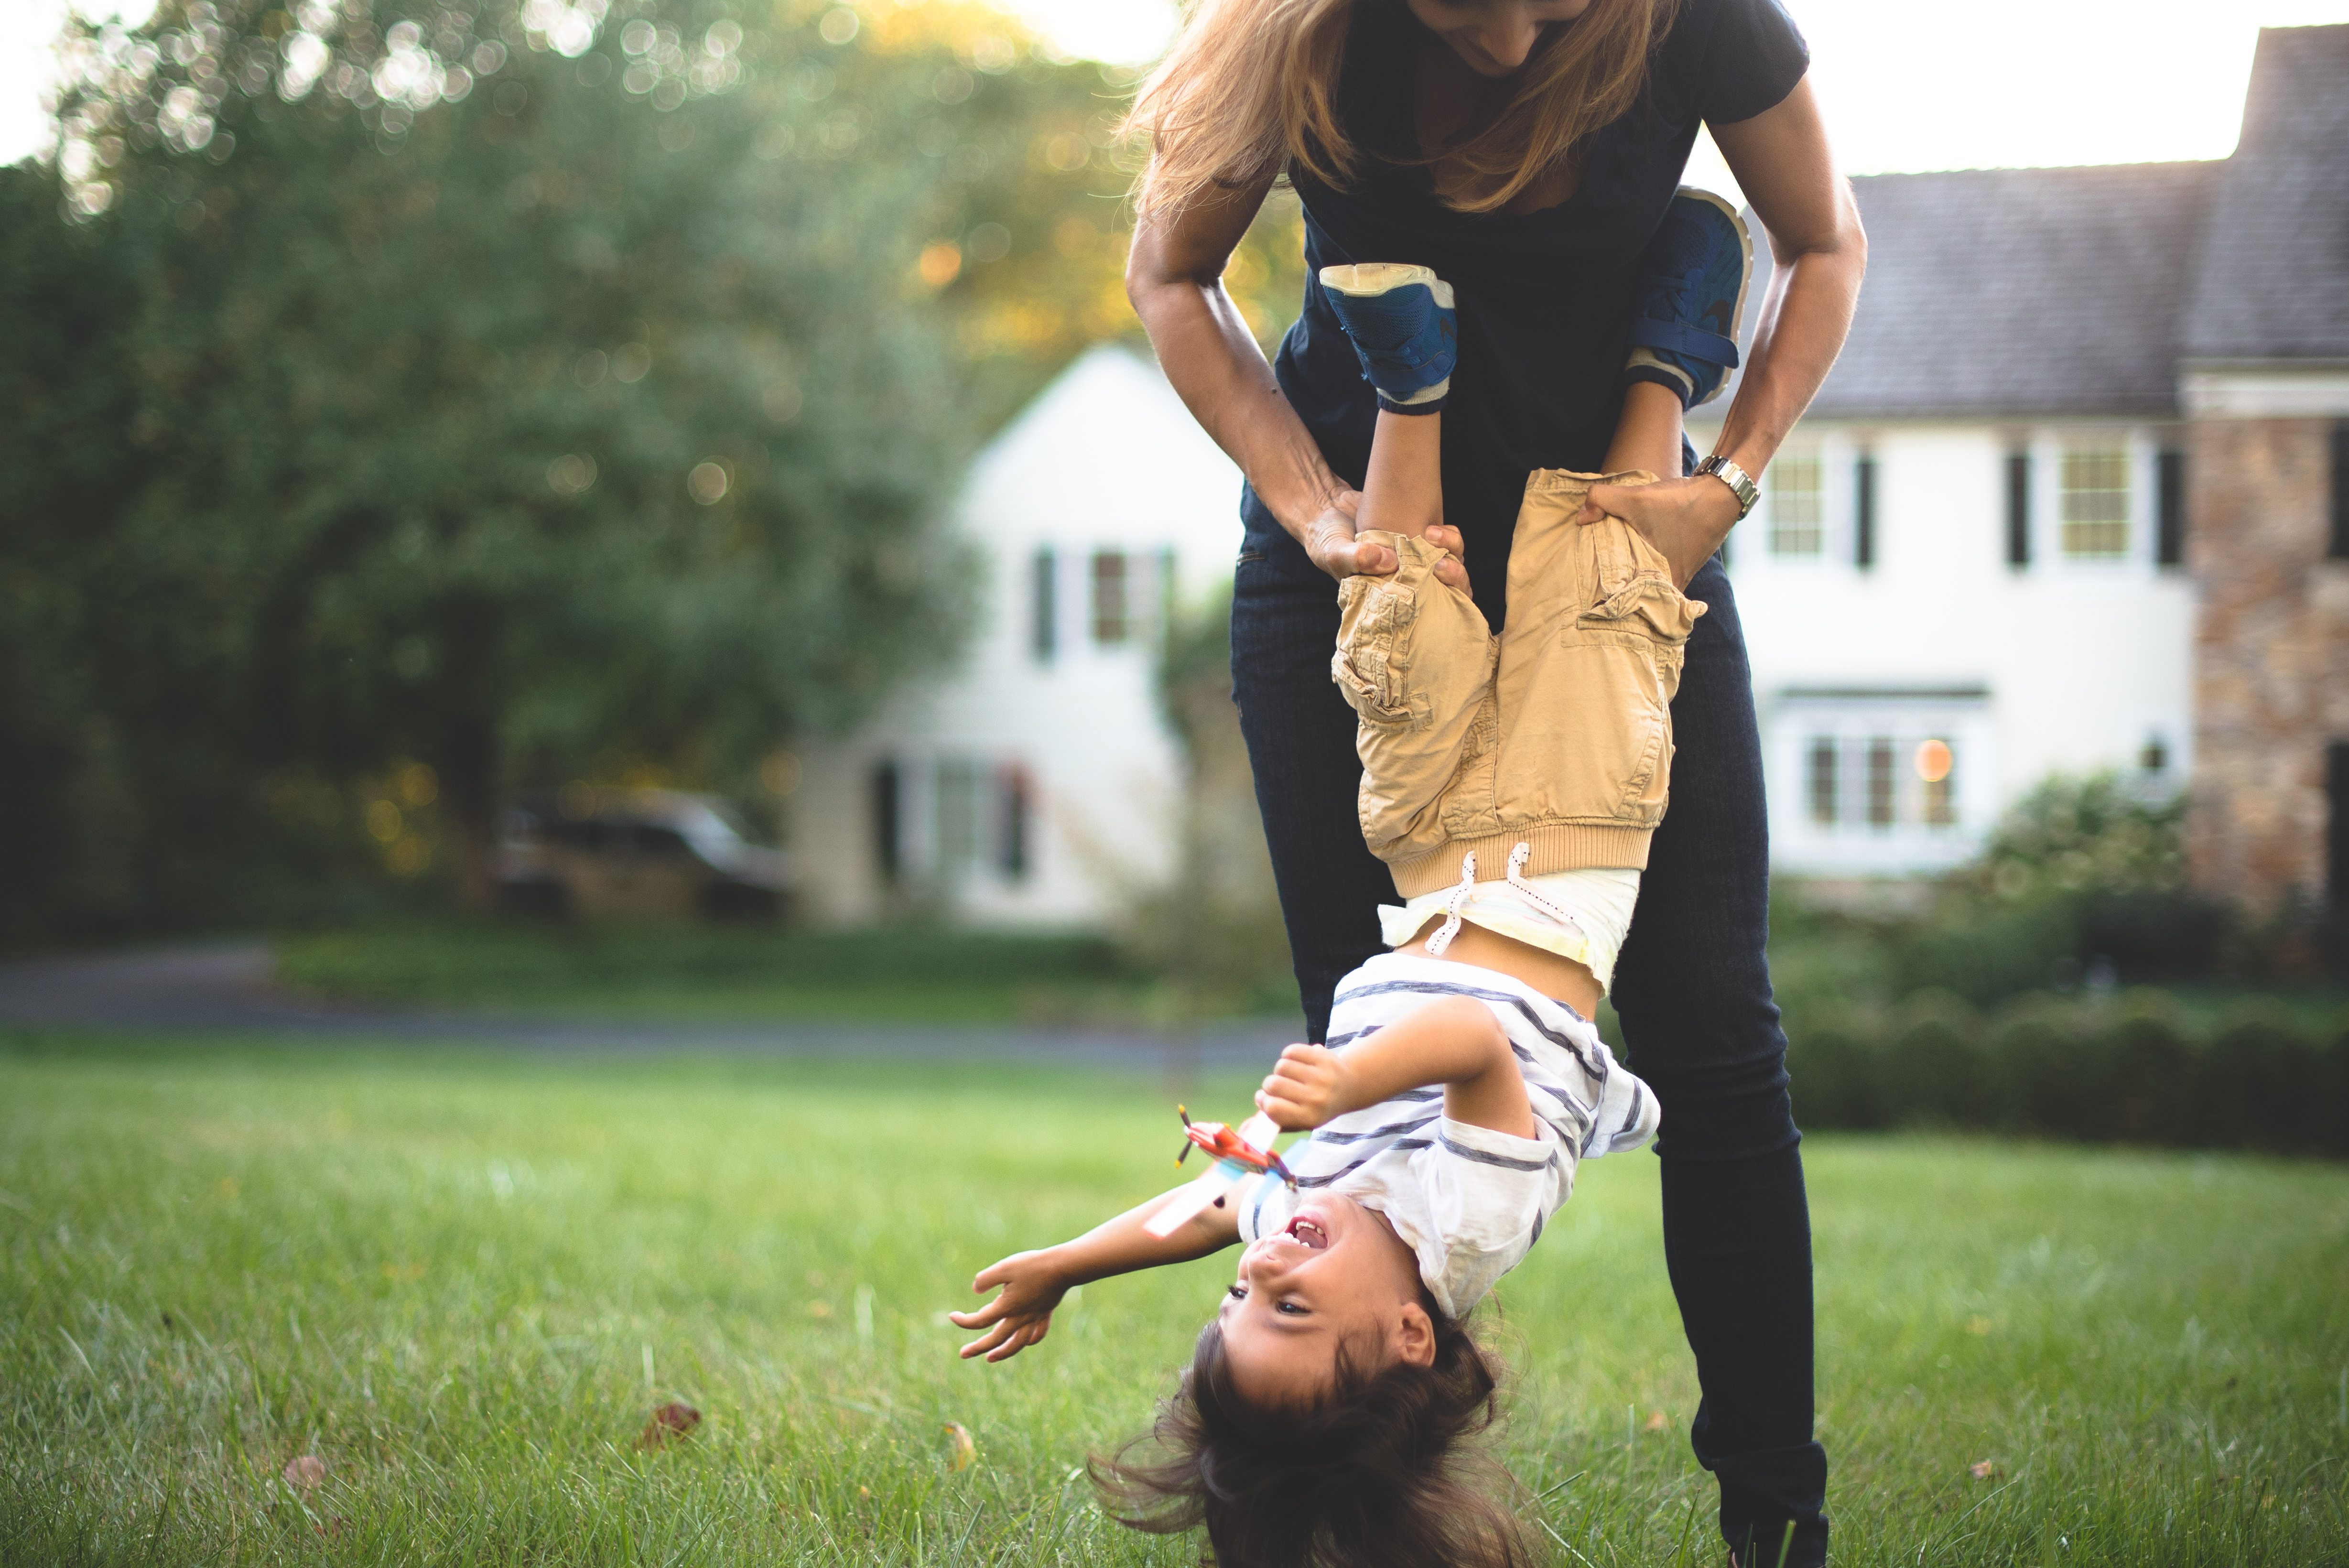 Little boy being swung upside down by mom in front yard.